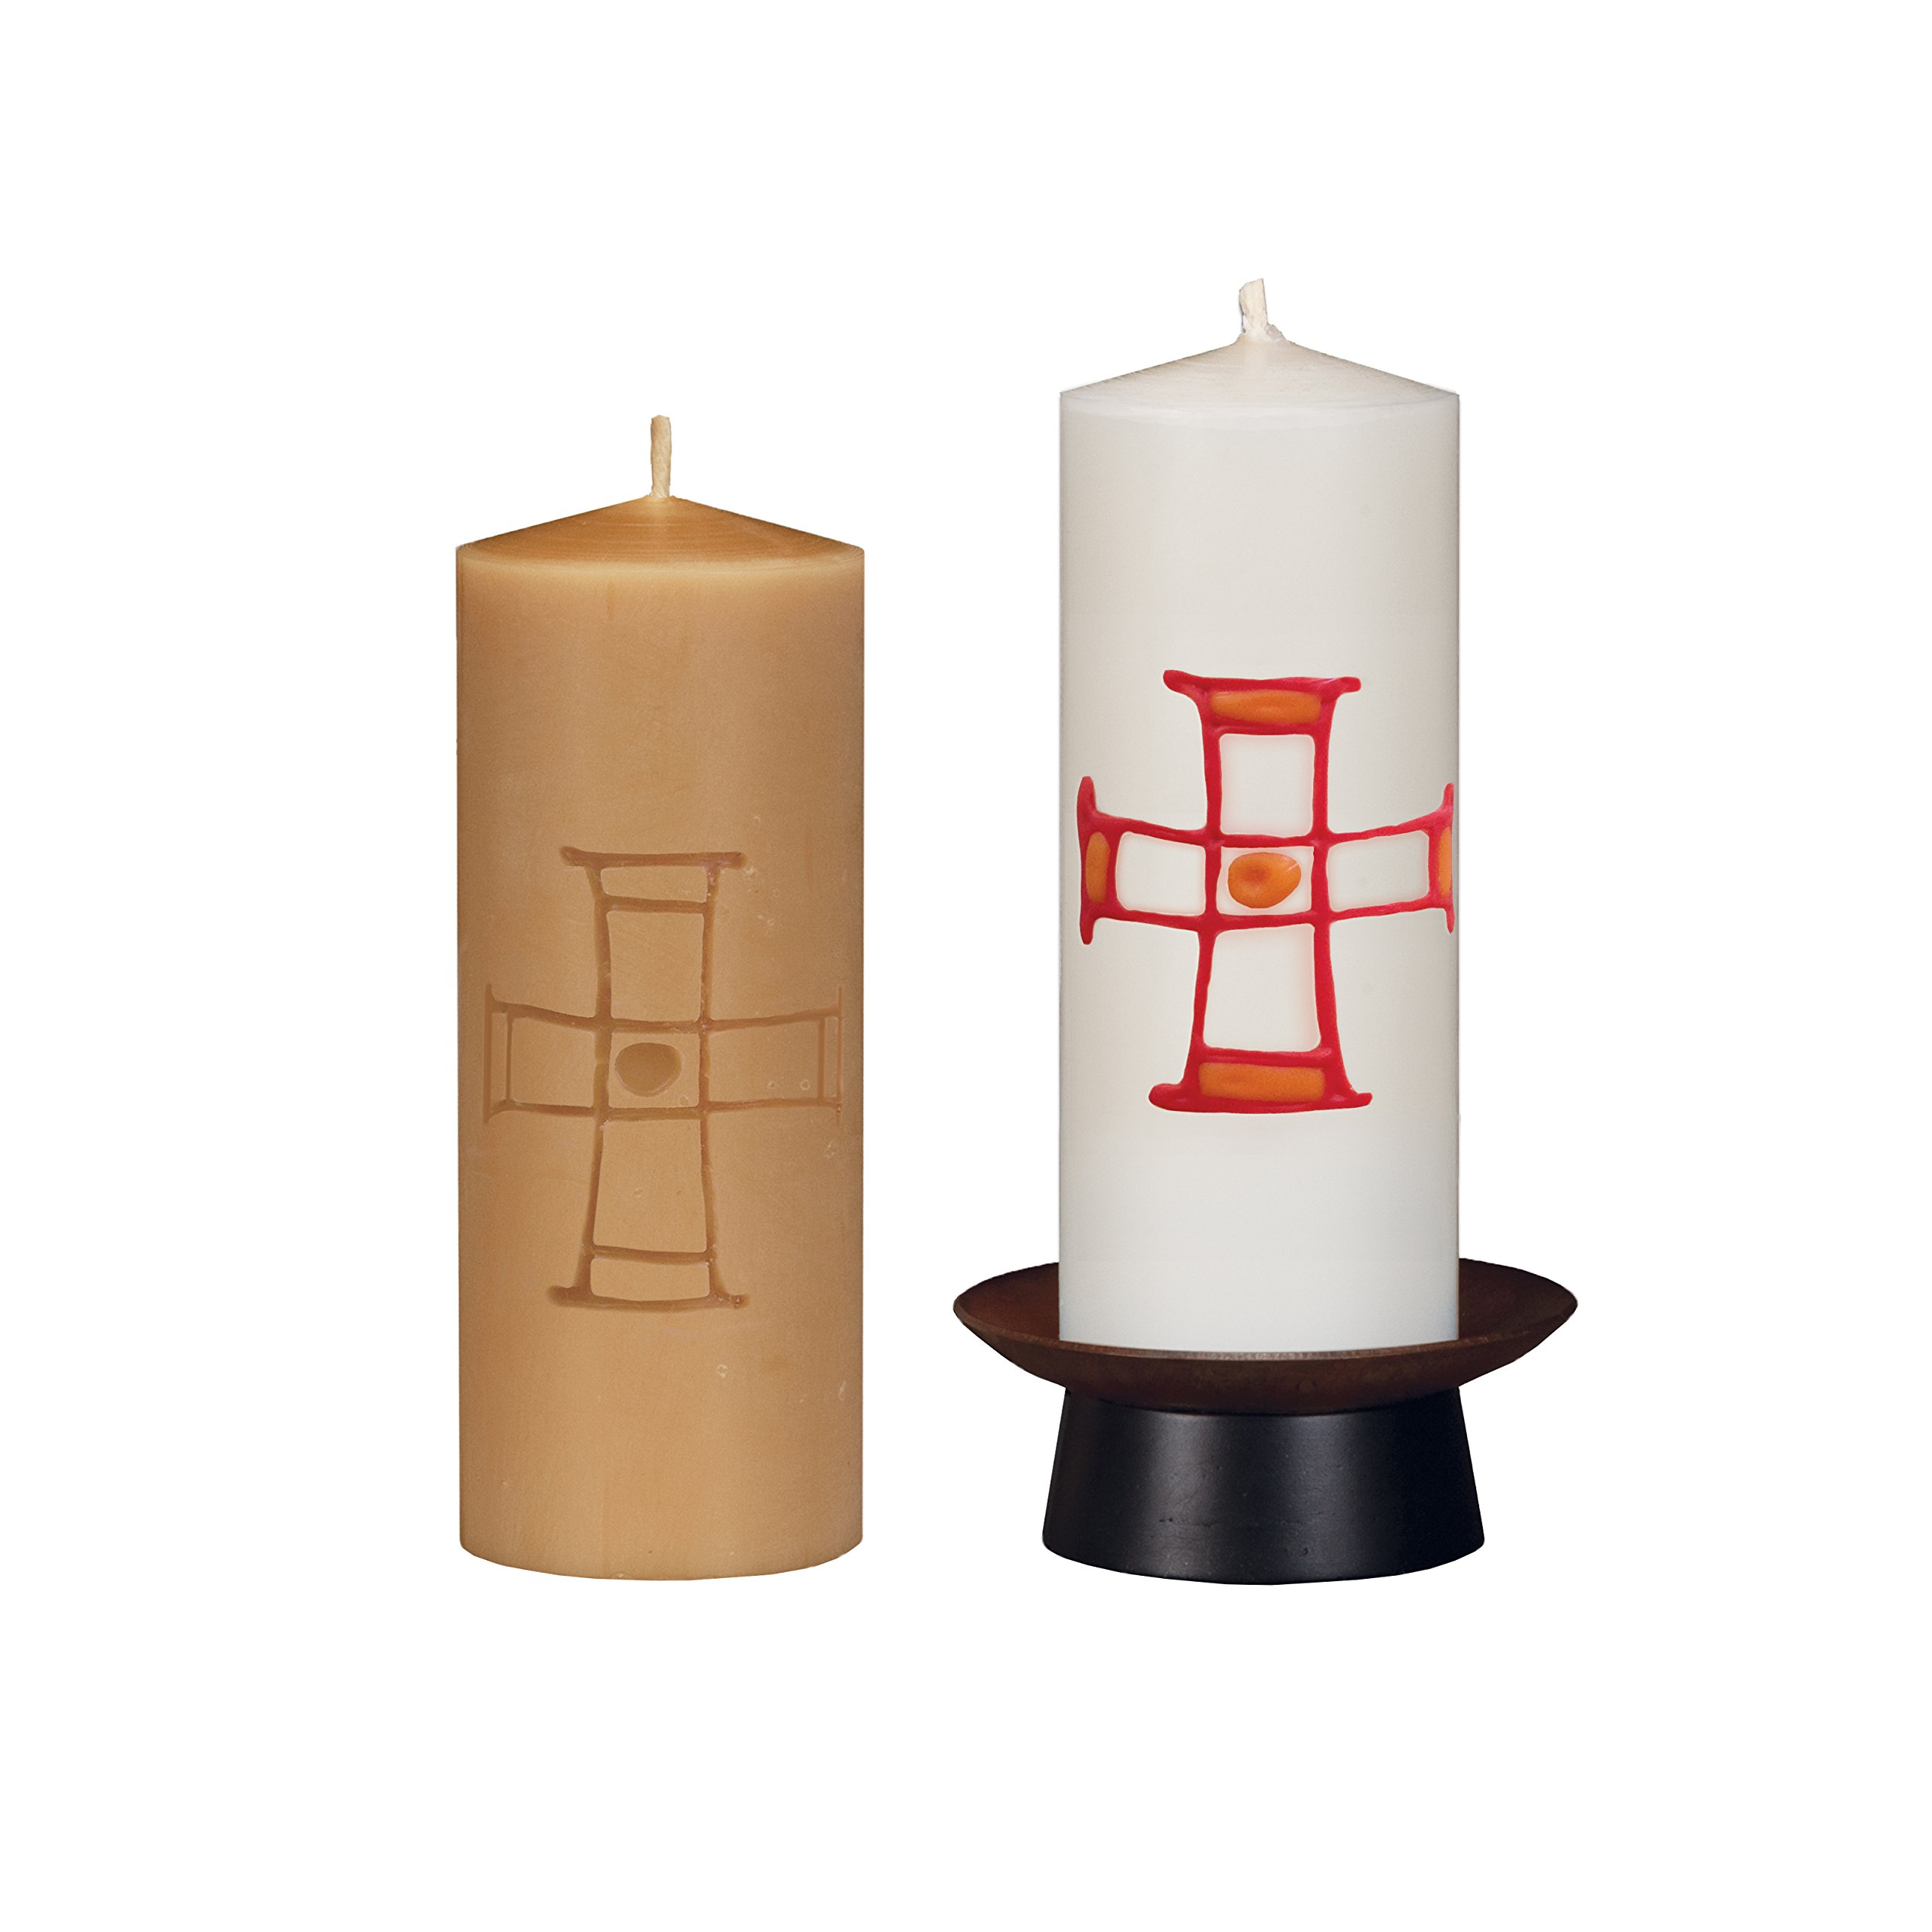 Beeswax Christos™ Candle Set; 2-1/2'' x 6'' candles with base; Alabare™ design in red/orange. Handcrafted in New England. Made in America. by Marklin Candle